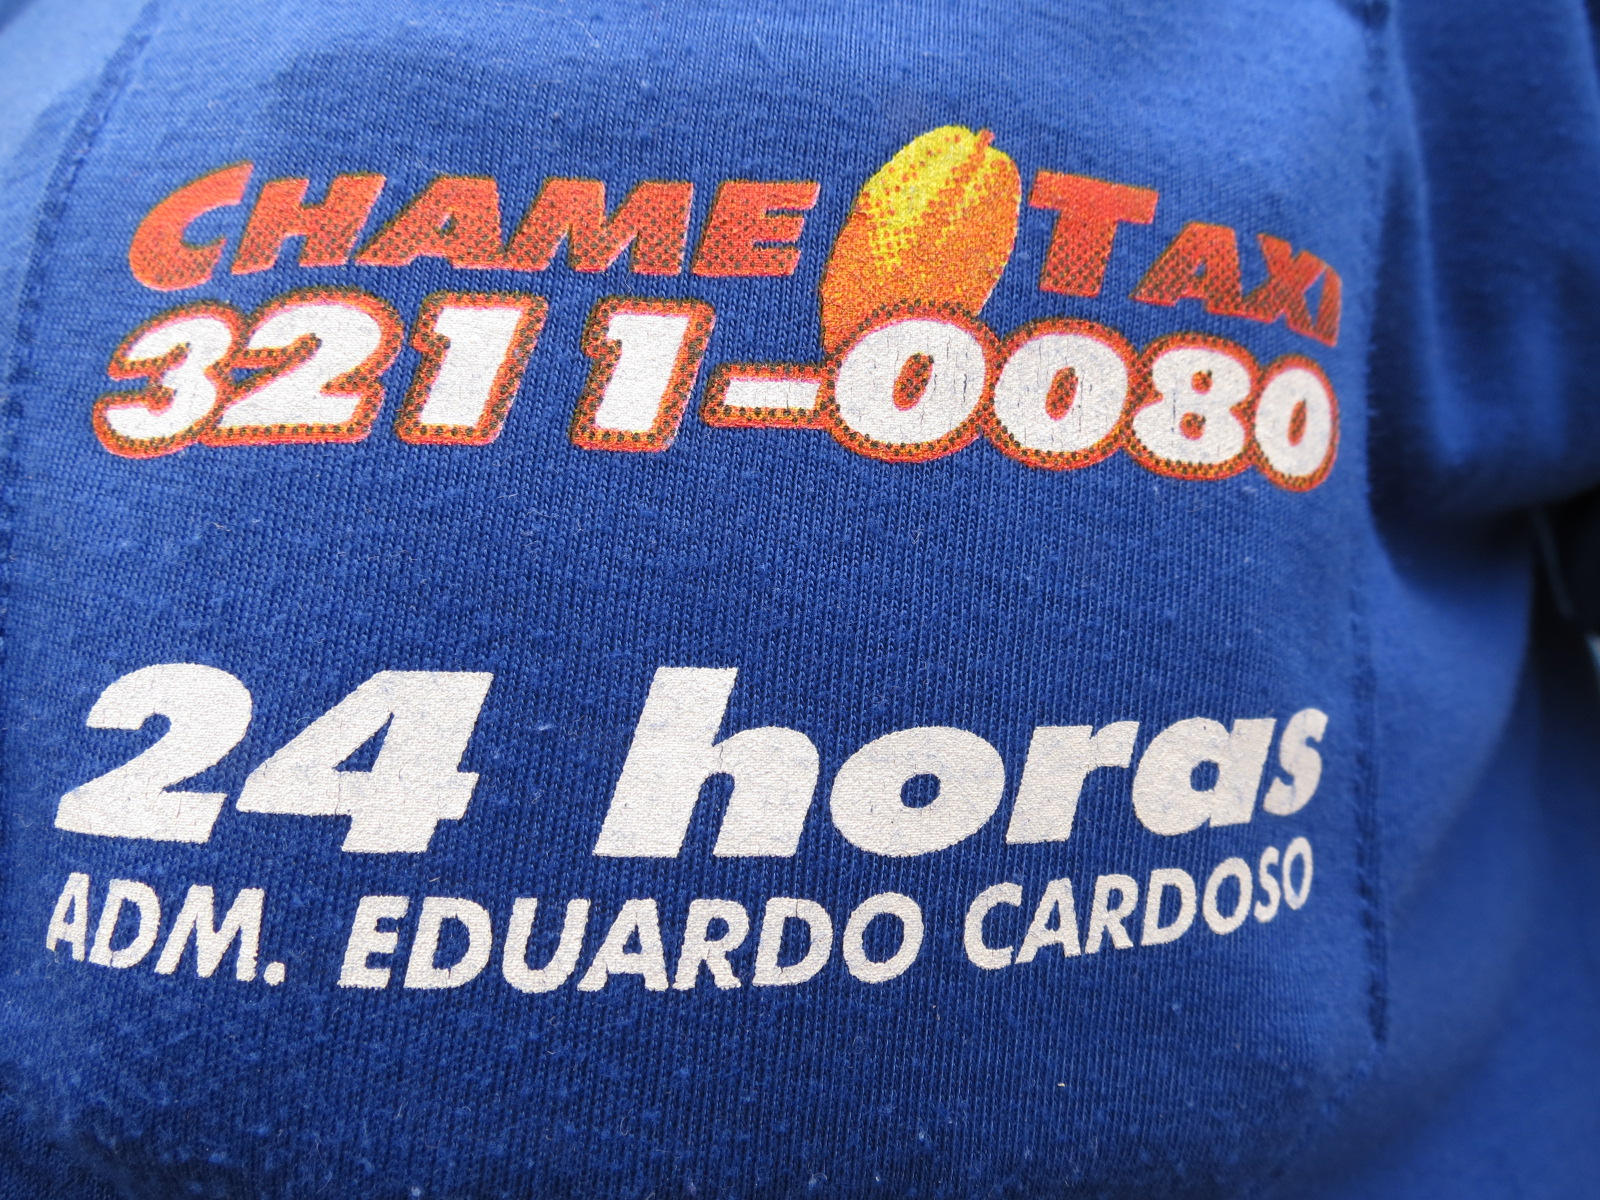 CHAME TAXI 3211-0080